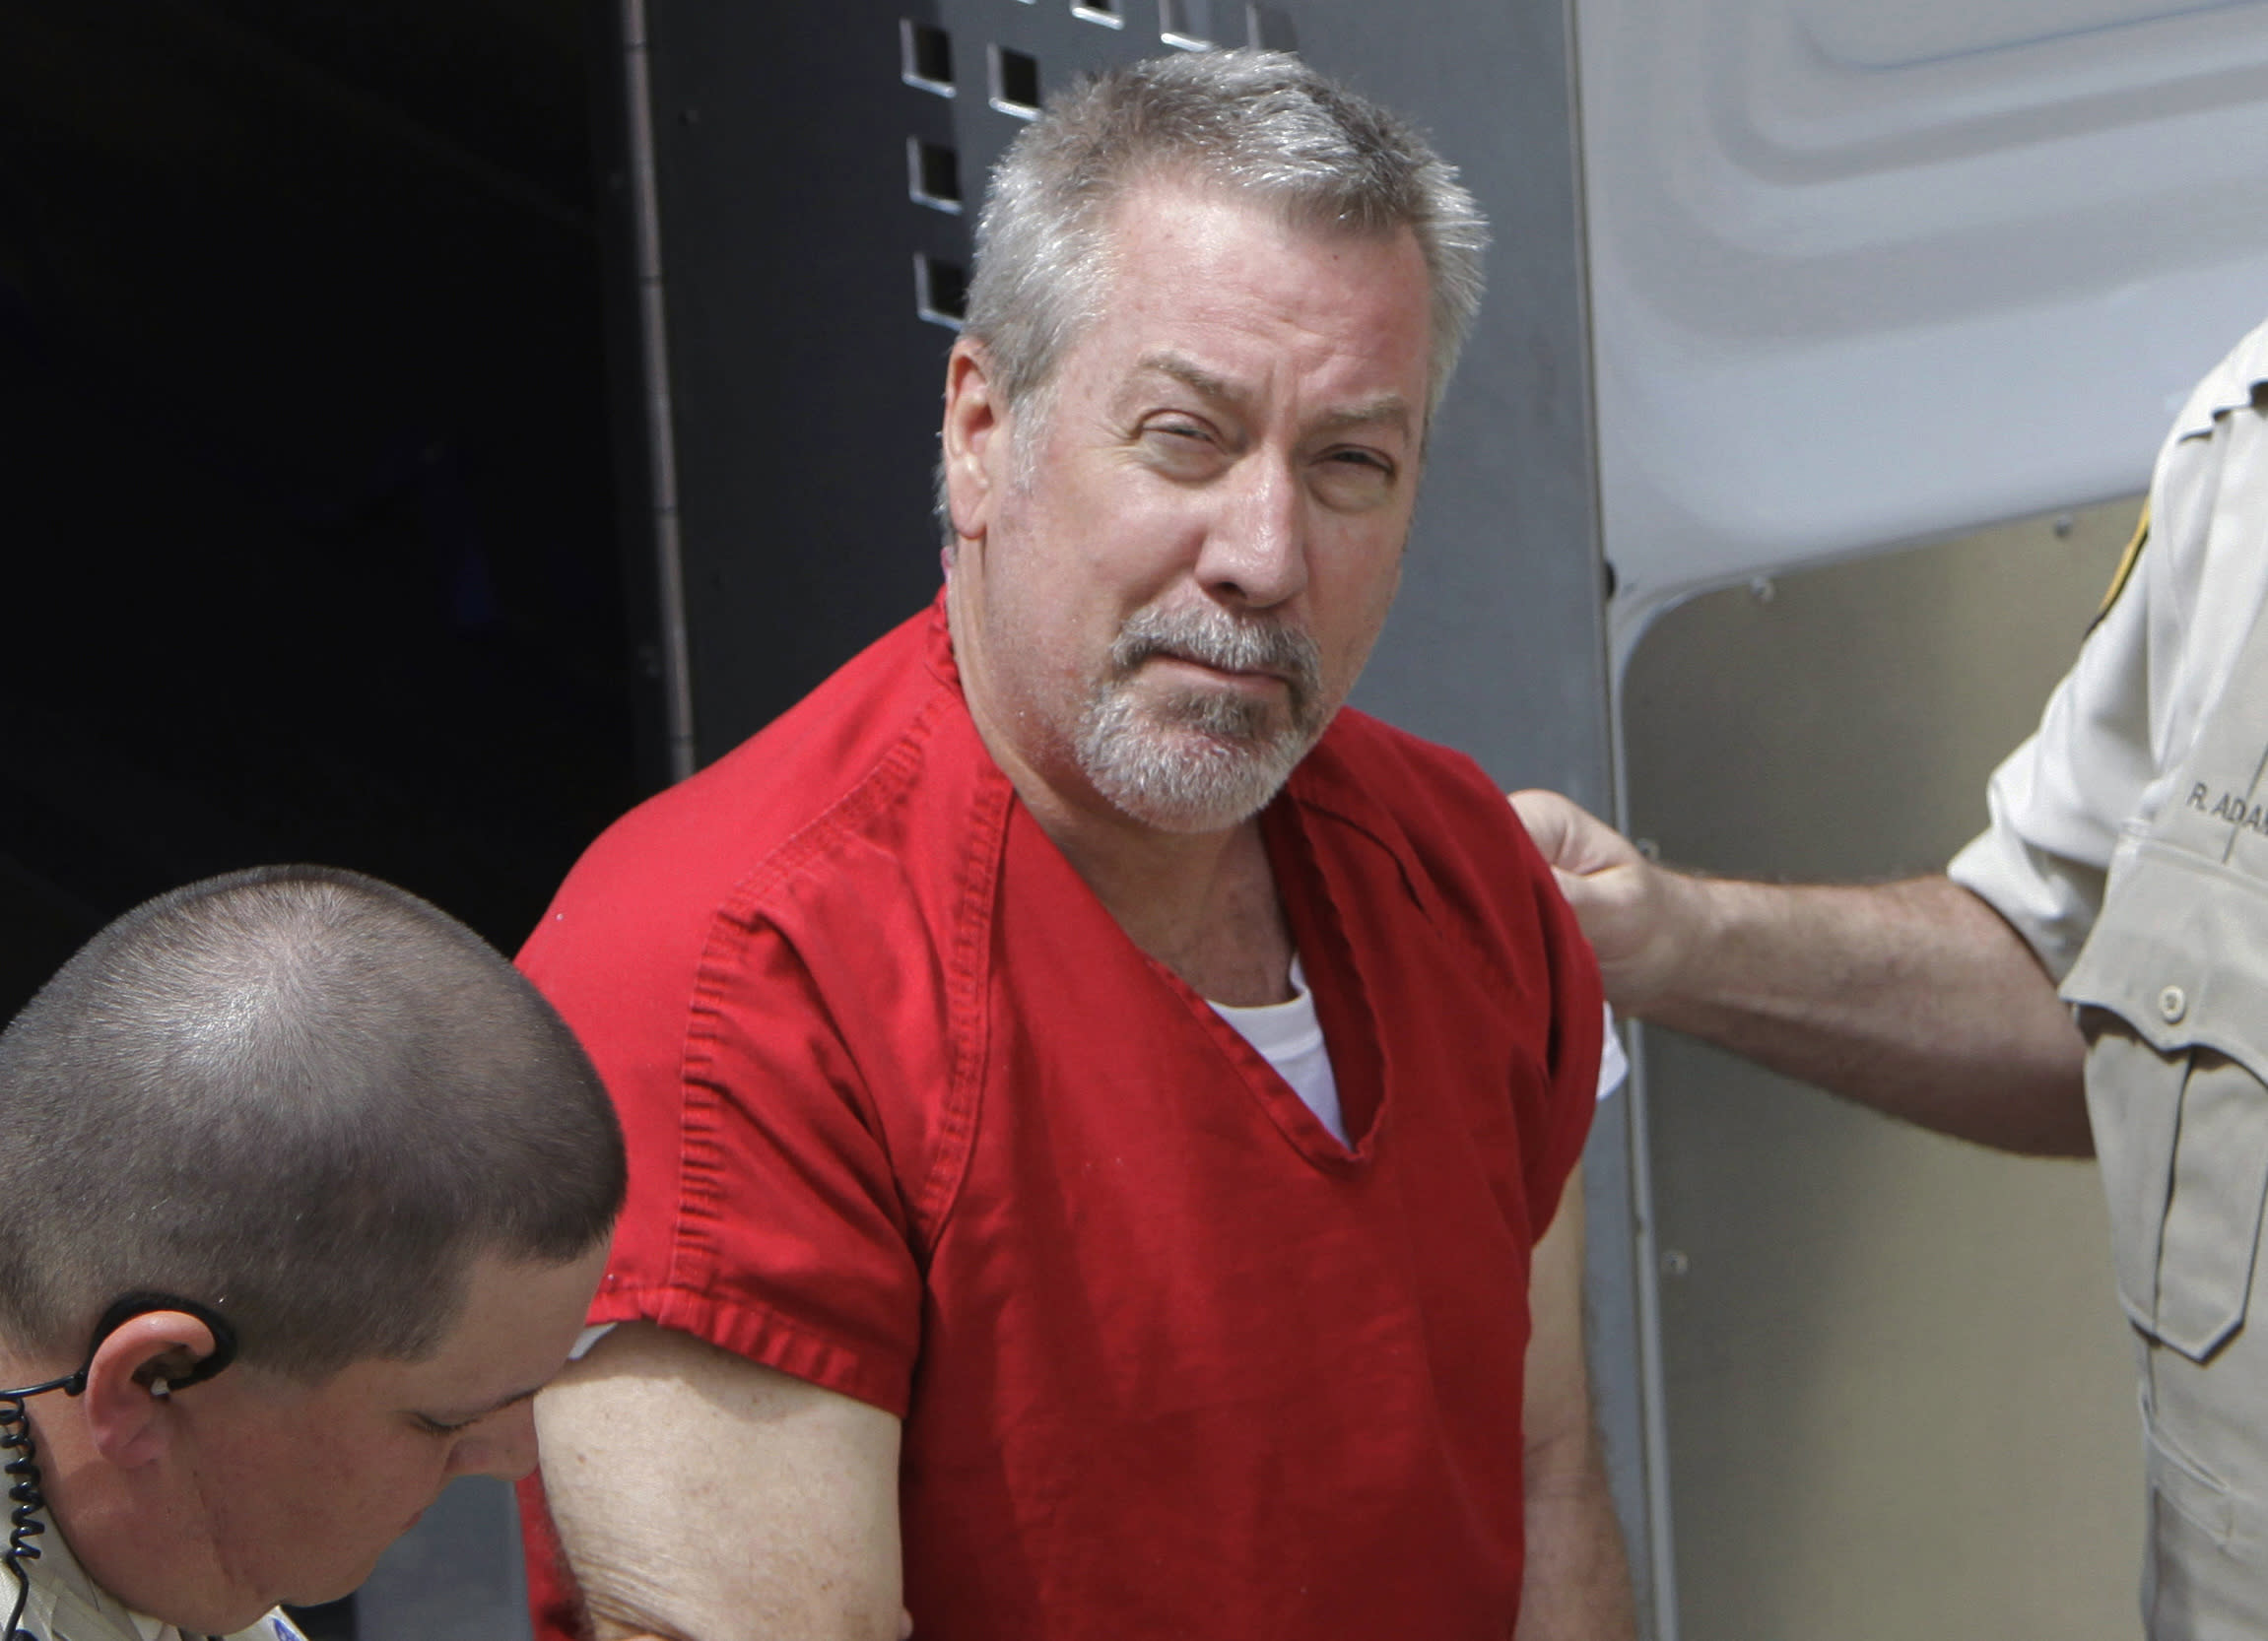 drew paterson trial An inmate housed with convicted wife-killer drew peterson claims the former cop confessed to killing his fourth wife.